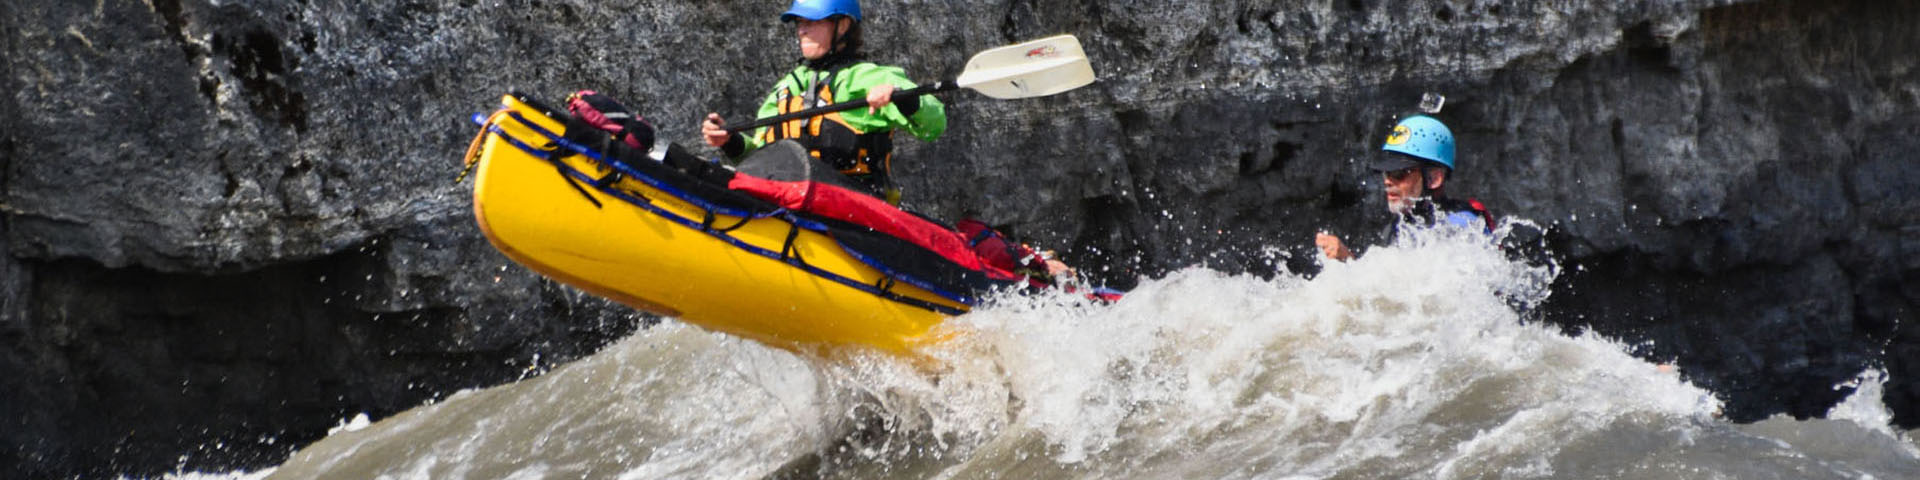 Nahanni River 3 Week Whitewater Canoe Trip by Black Feather - Image 266